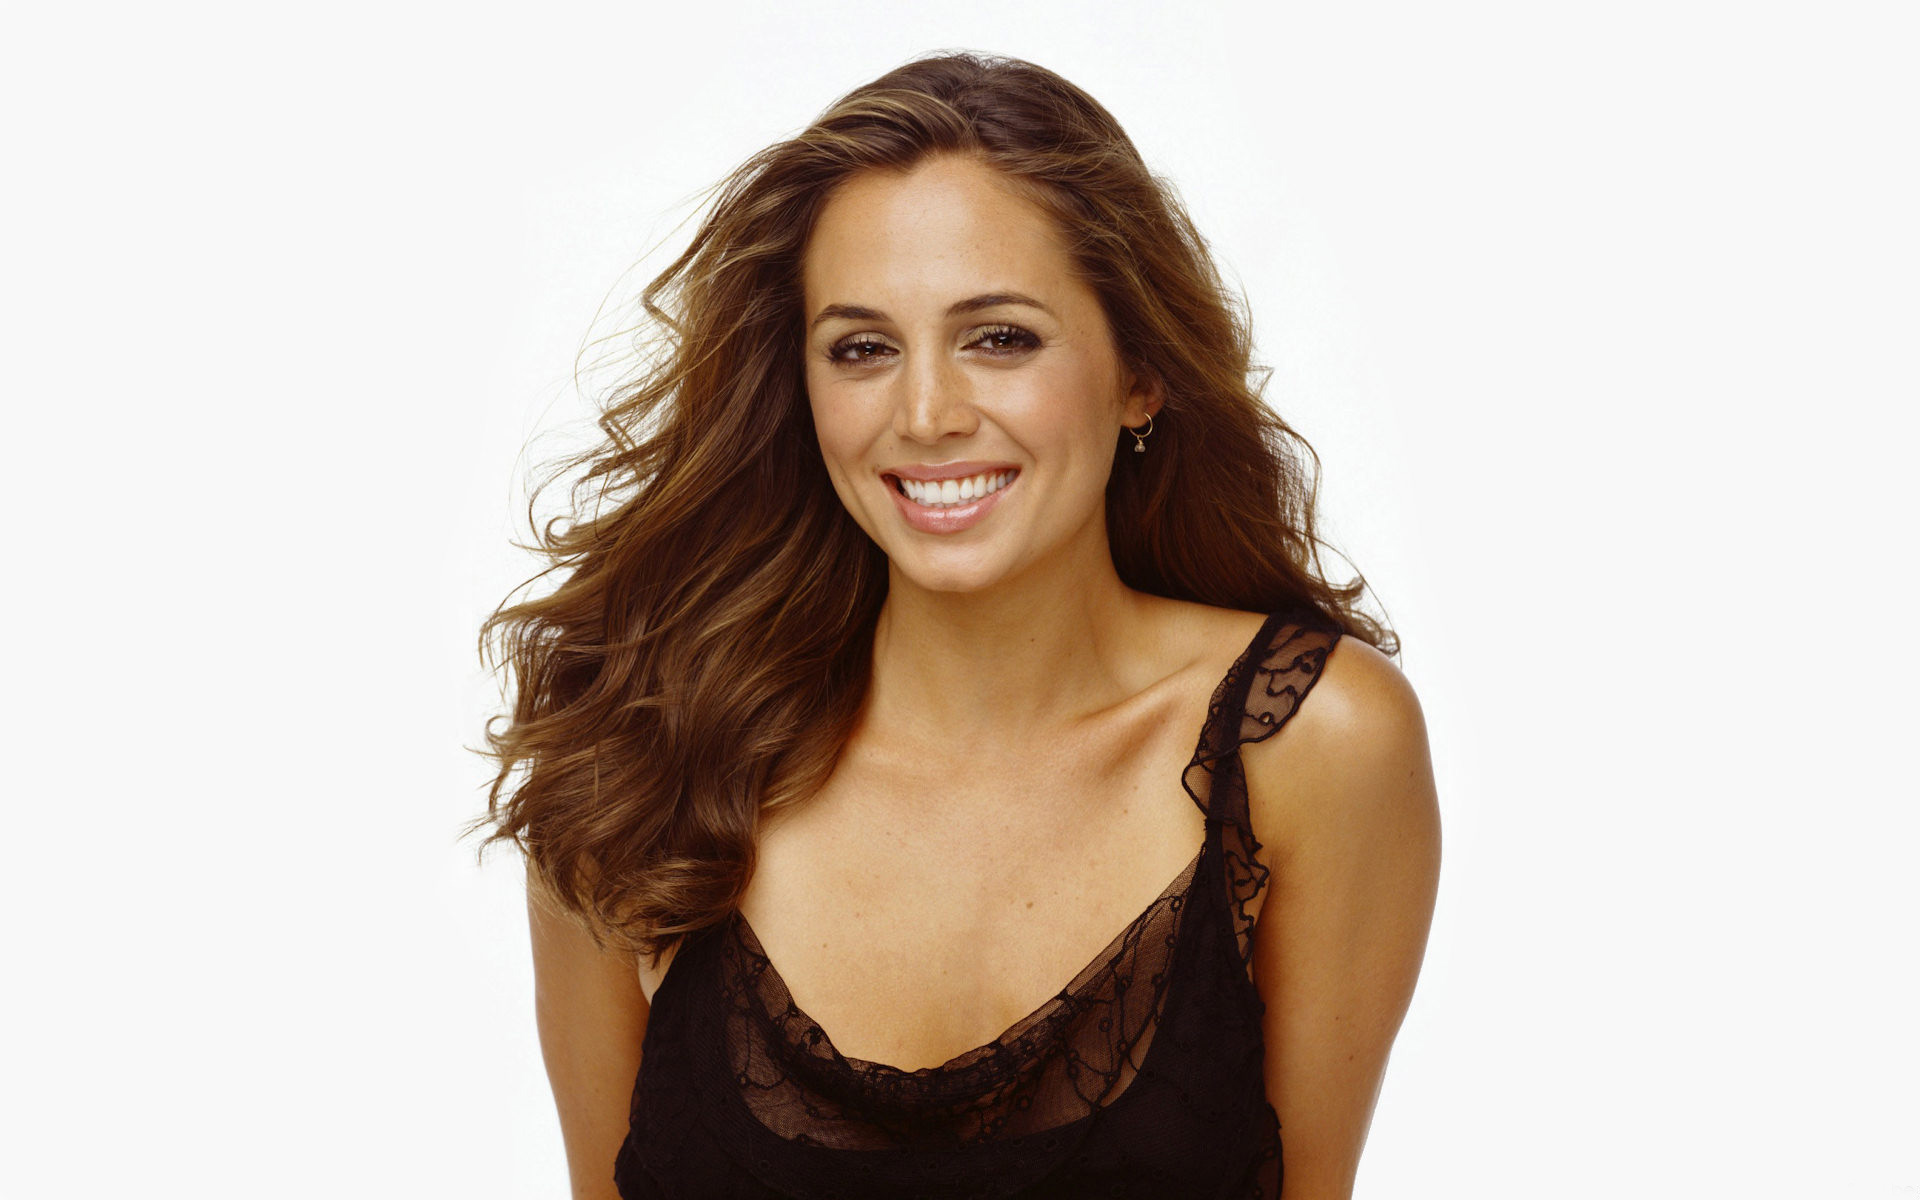 Just when you think Banshee can't get any better, Eliza Dushku signs on for Season 4